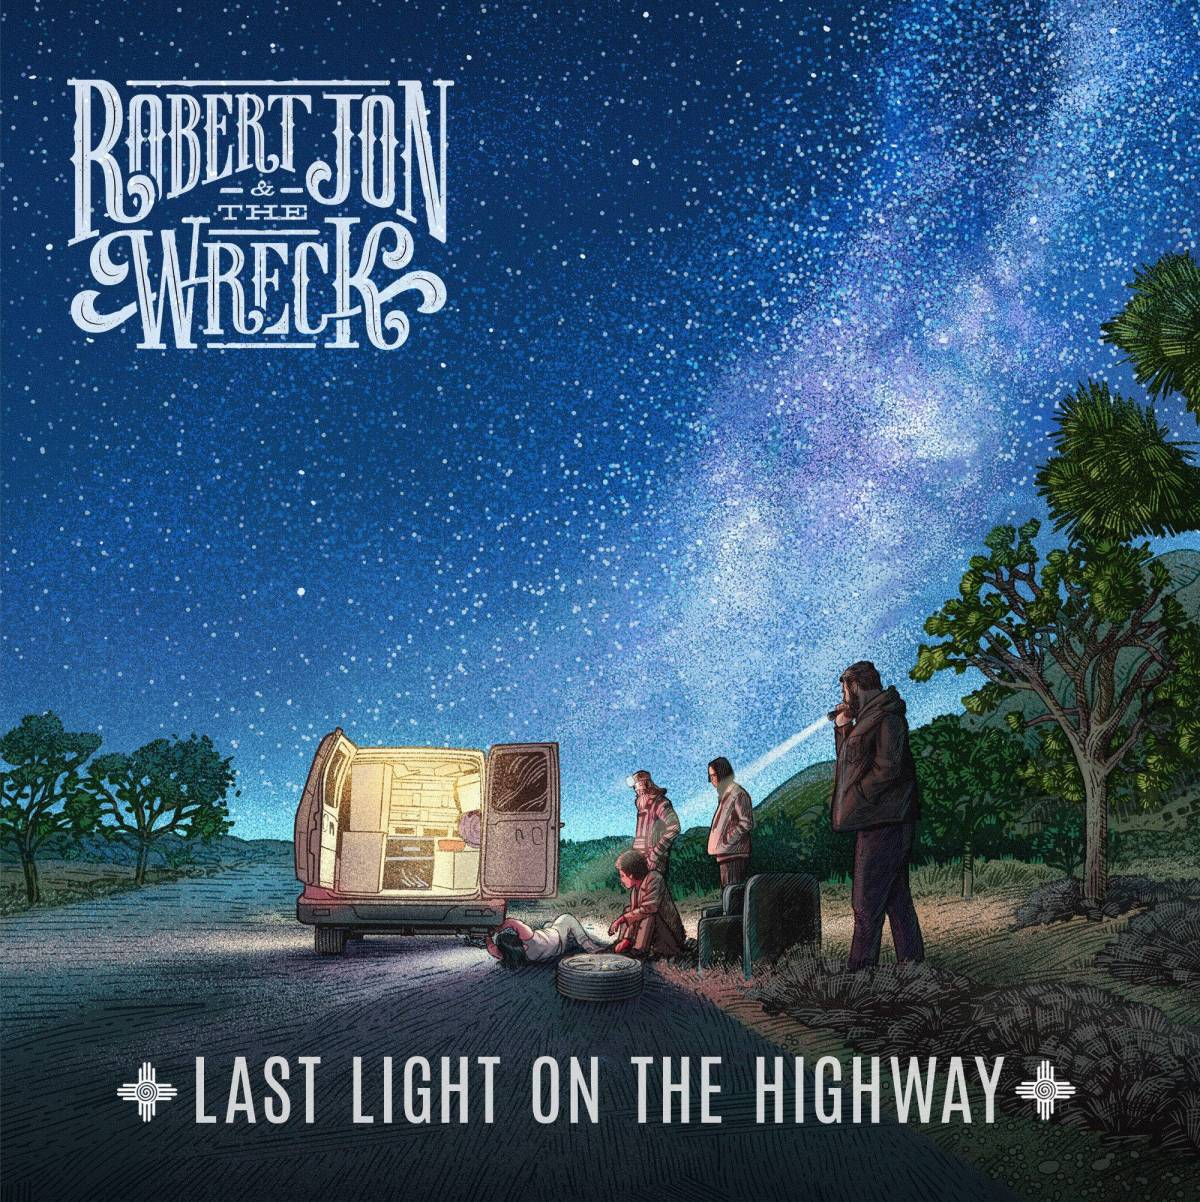 Robert Jon & The Wreck - Last Light On The Highway